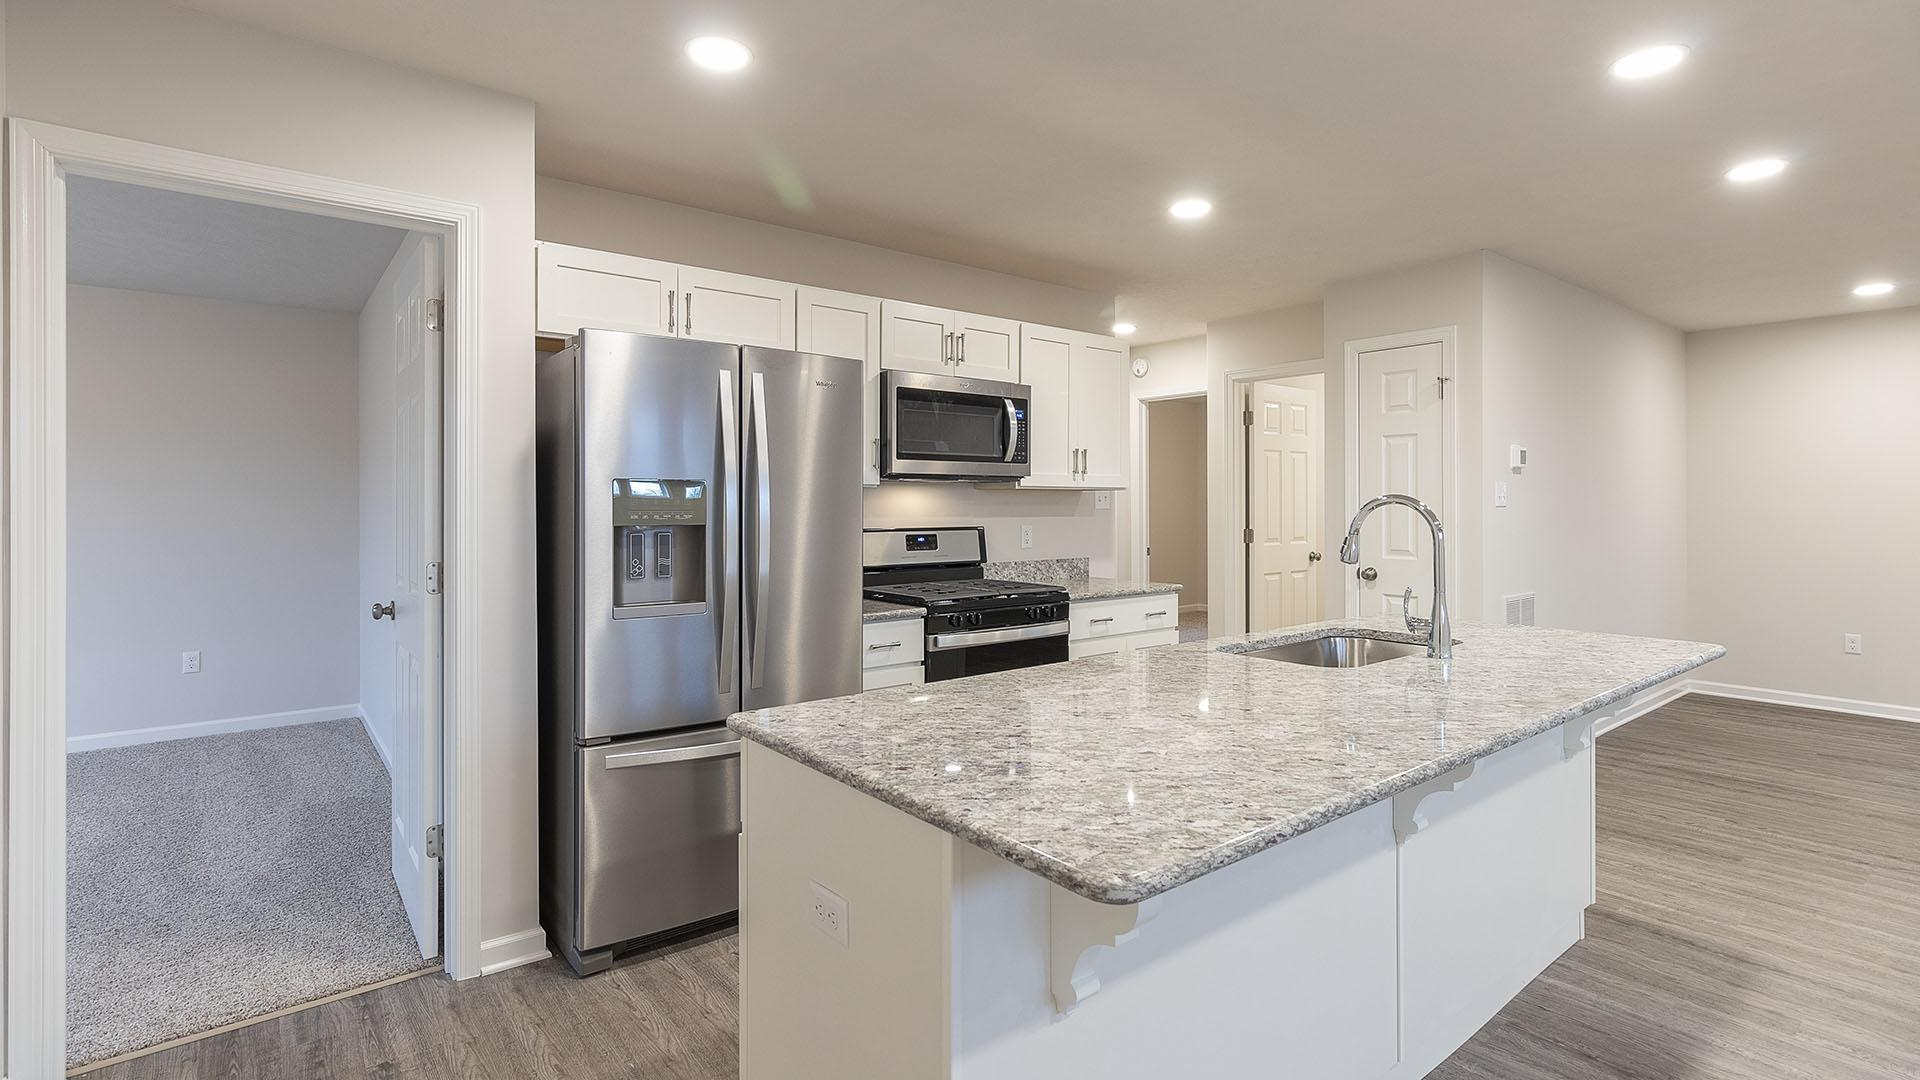 Kitchen featured in the Glynwood By S & A Homes in State College, PA